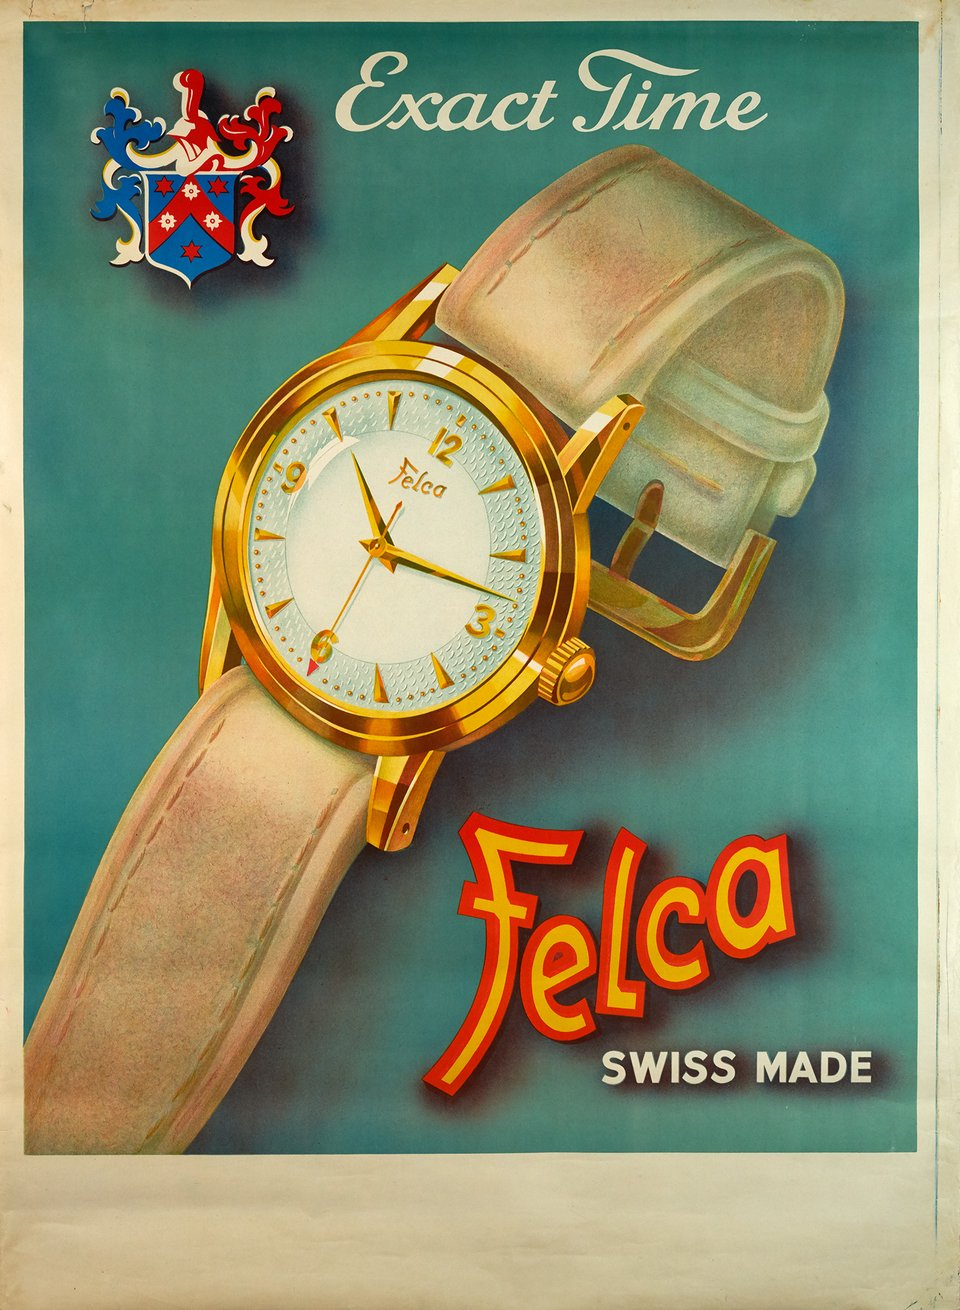 Felca, Exact Time – Affiche ancienne – ANONYME – 1940